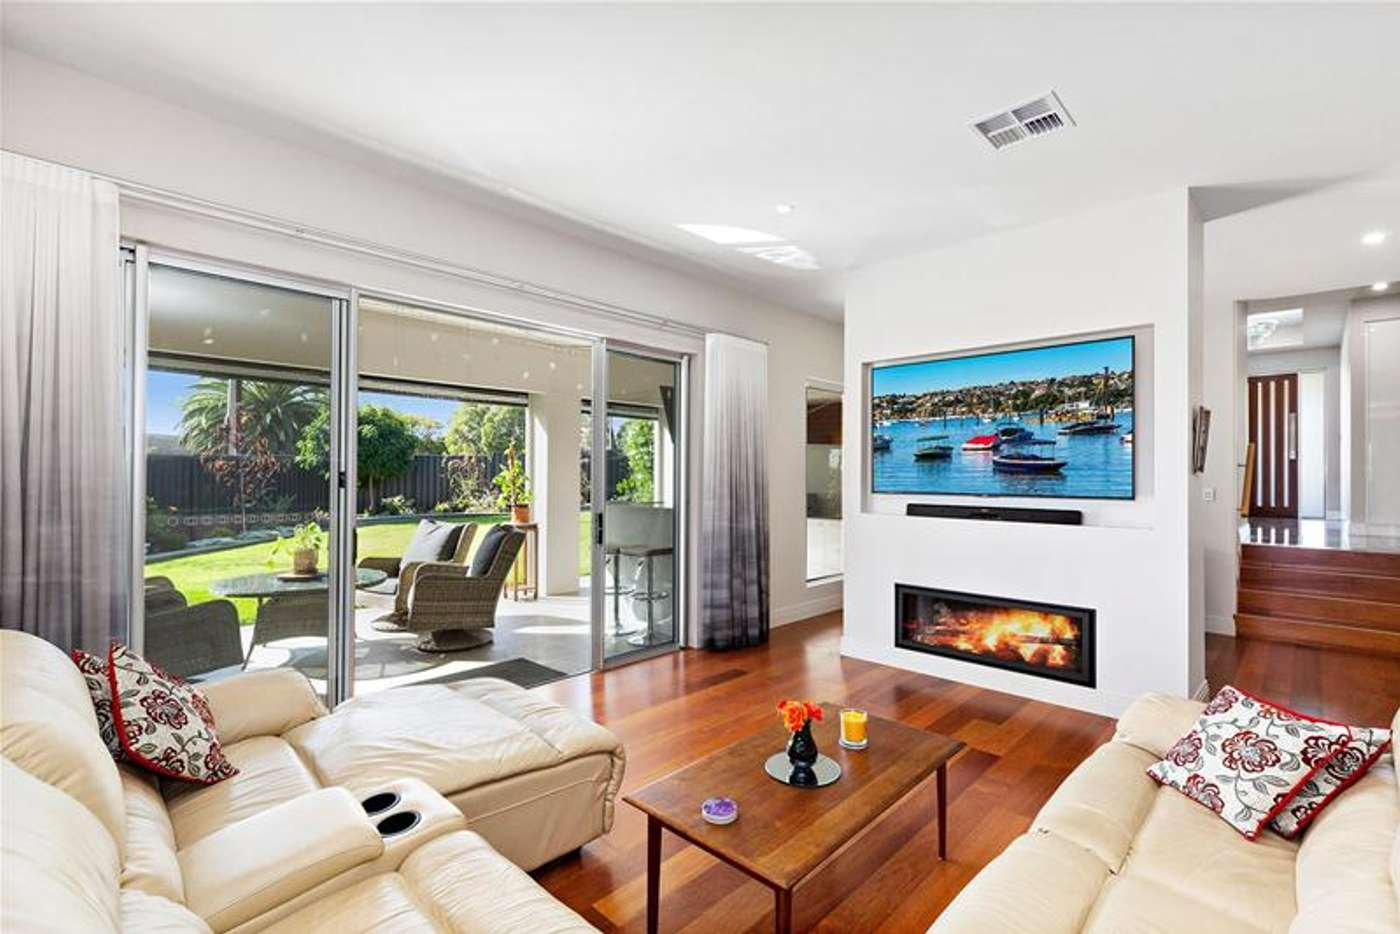 Fifth view of Homely house listing, 37 Cadell Street, Seaview Downs SA 5049